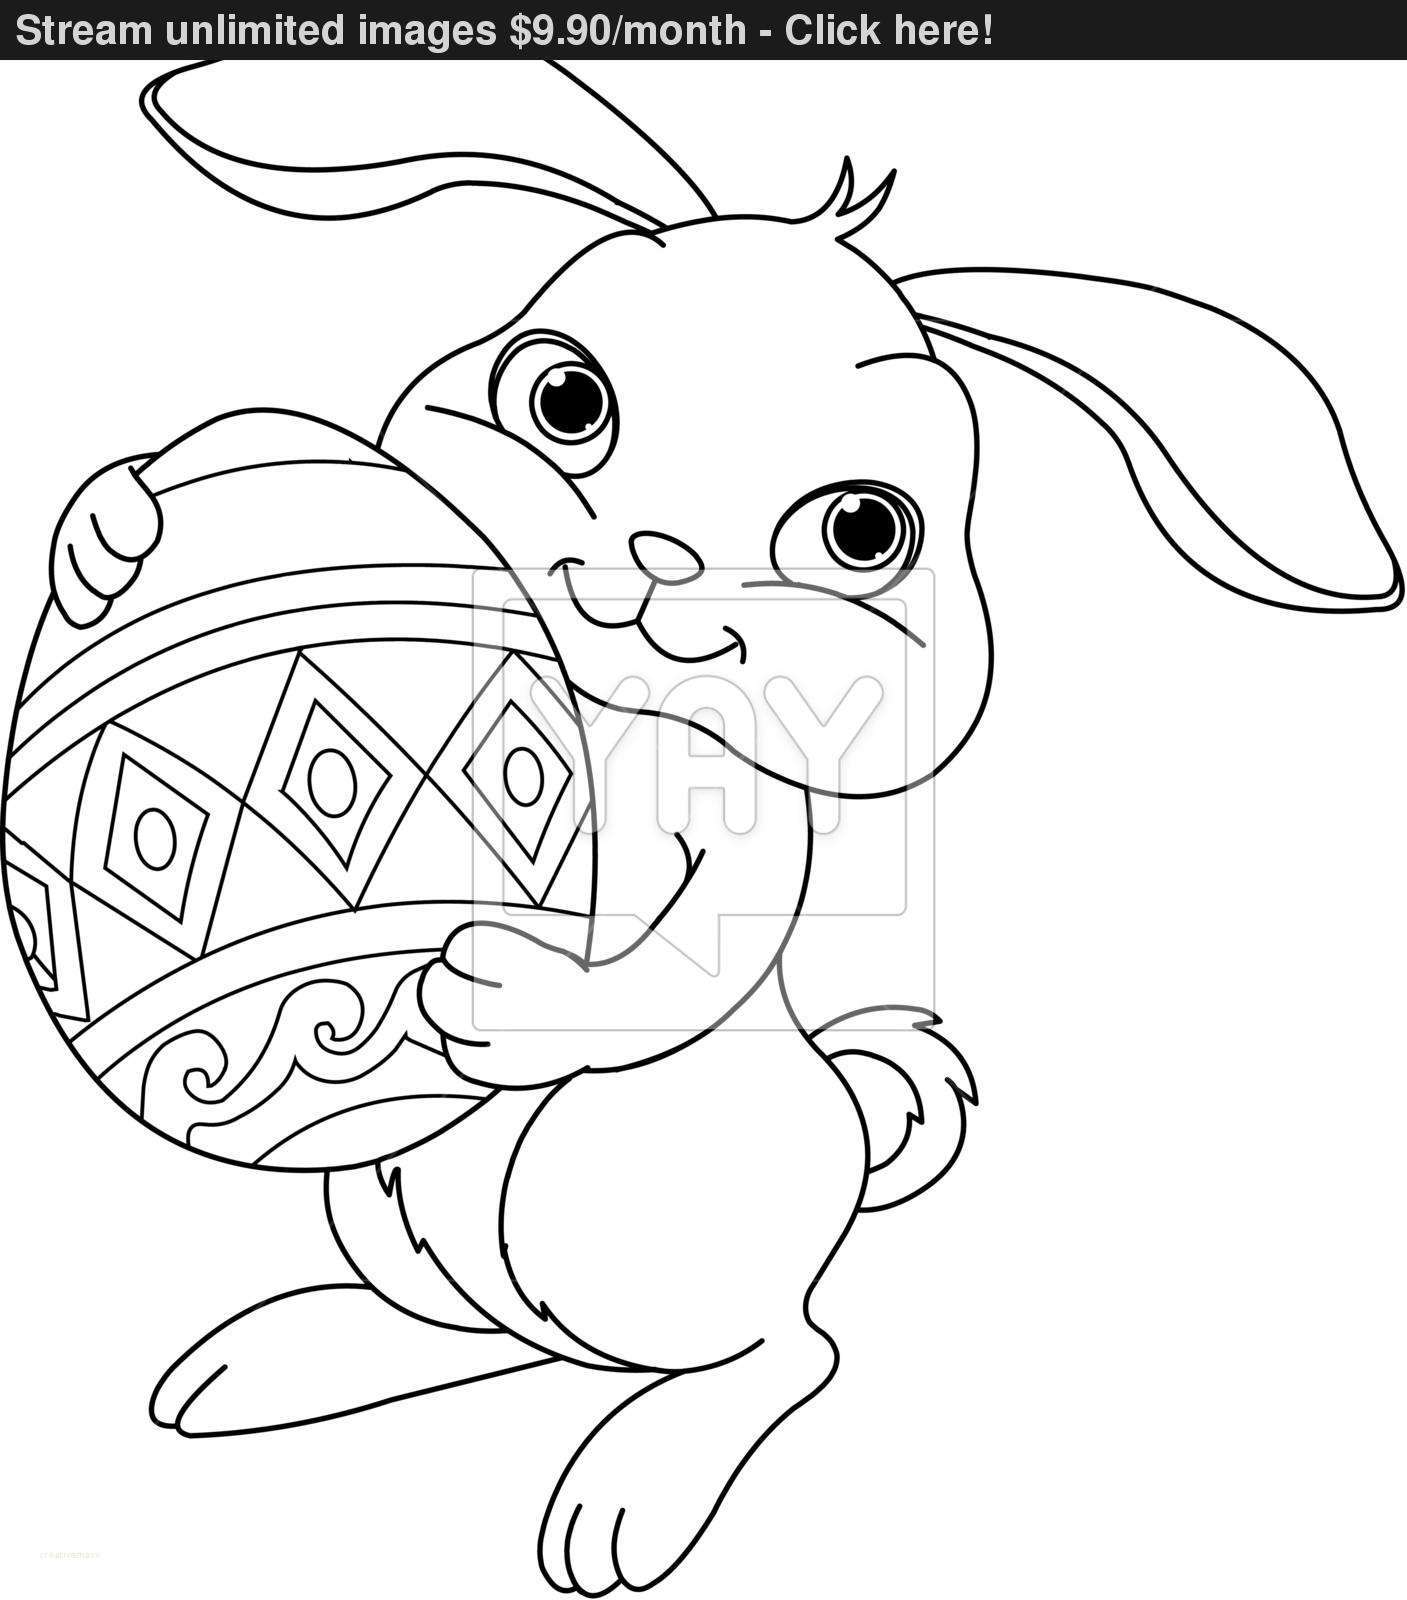 1407x1600 Easy Easter Bunny Drawing Elegant Easter Bunny Coloring Pages